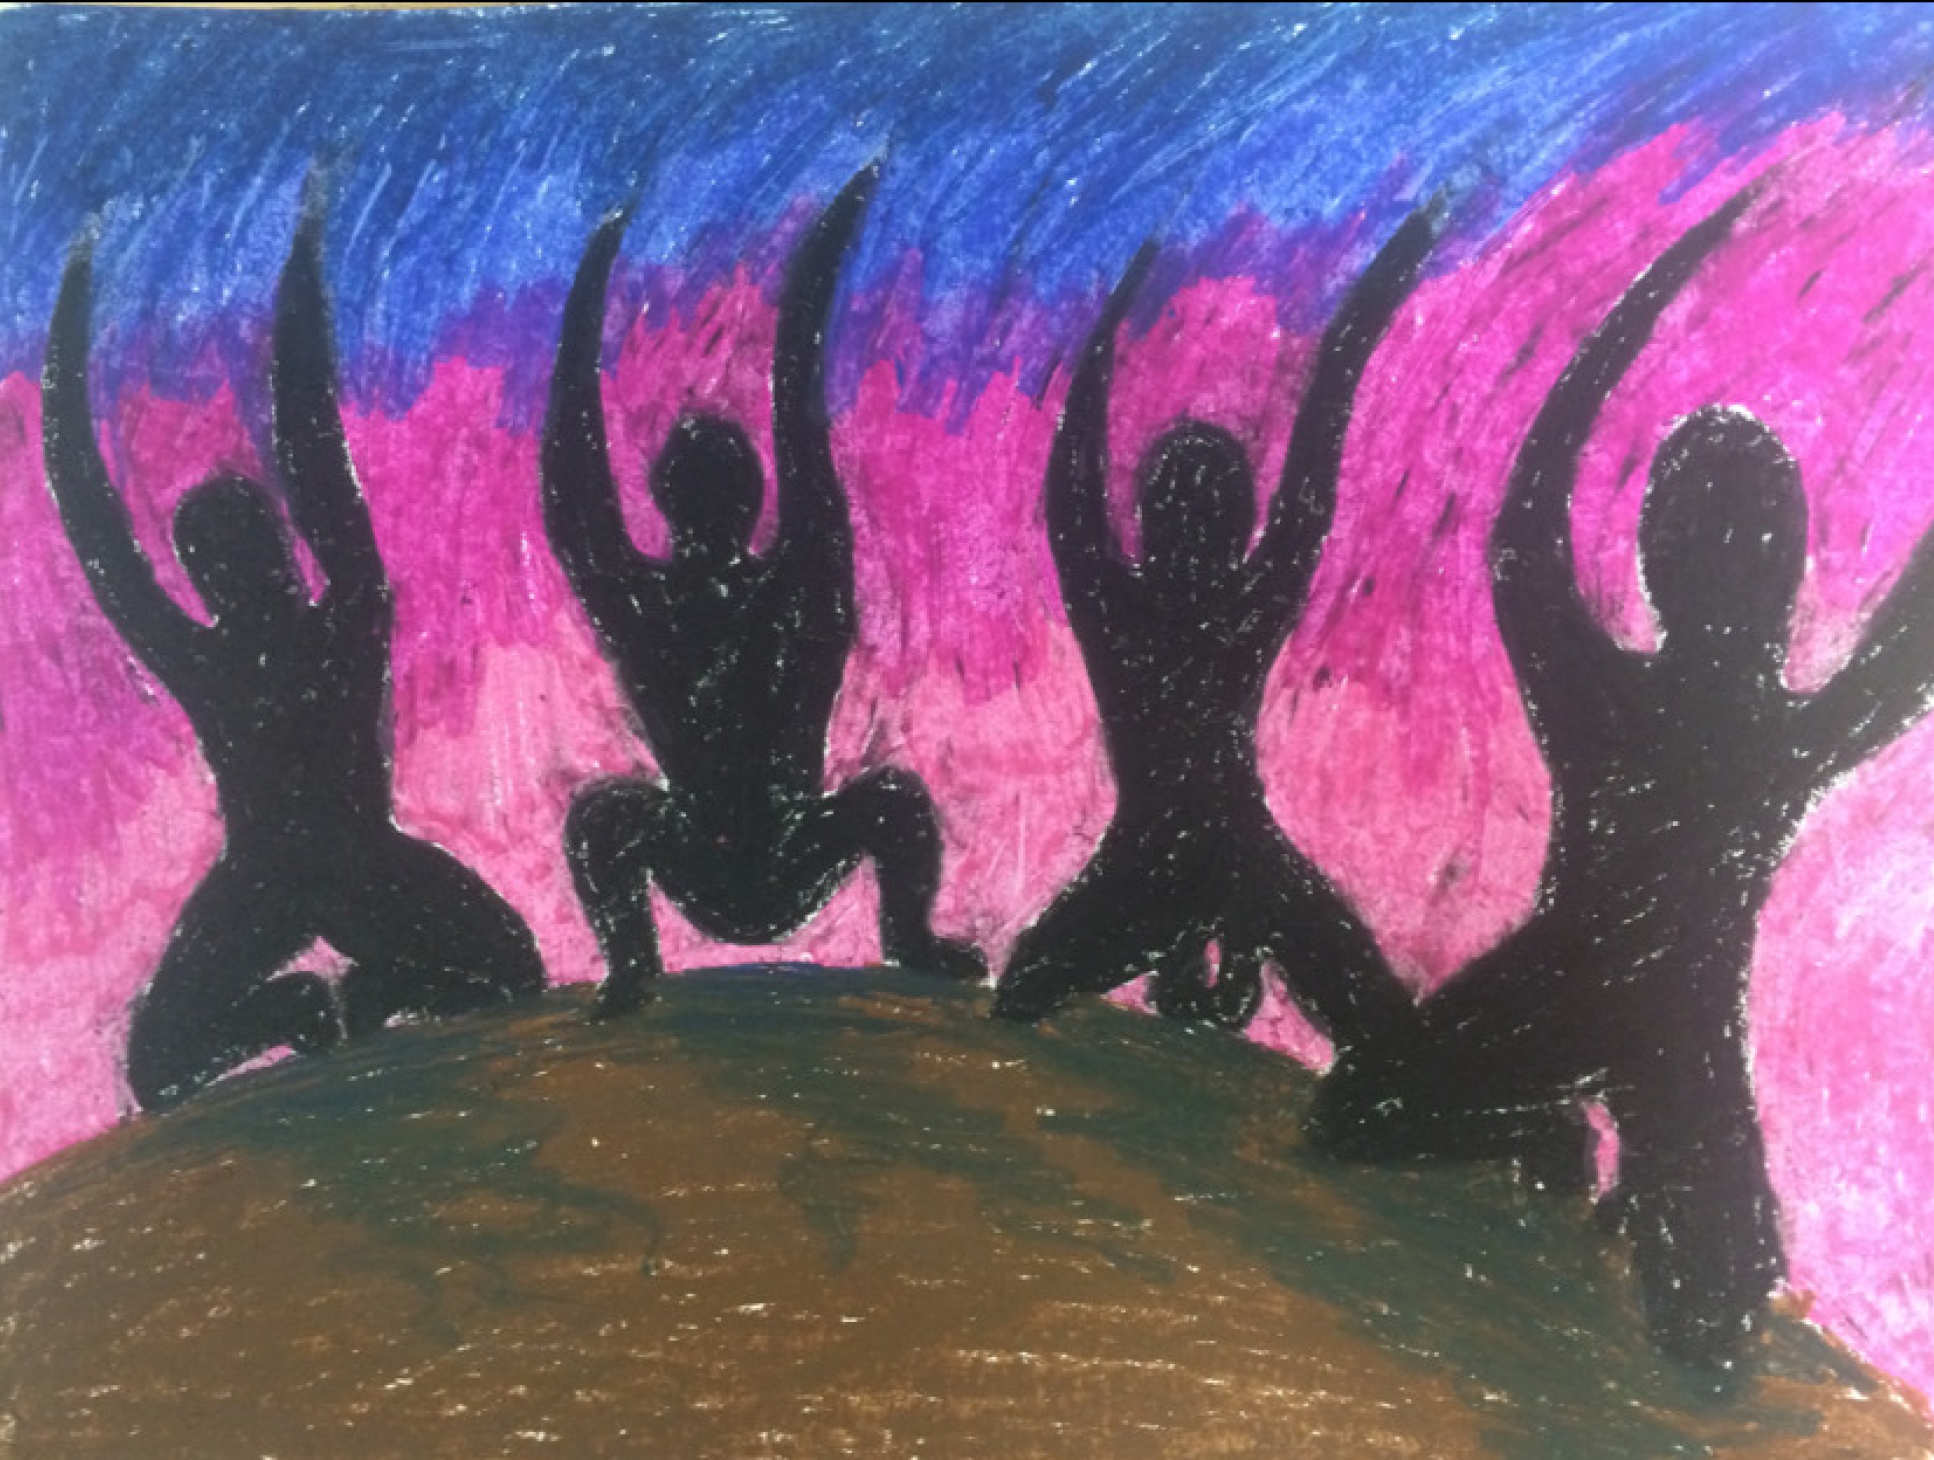 An illustration from one of study participants showing four kneeling shadows on a mound of earth waving their arms against a colourful background.